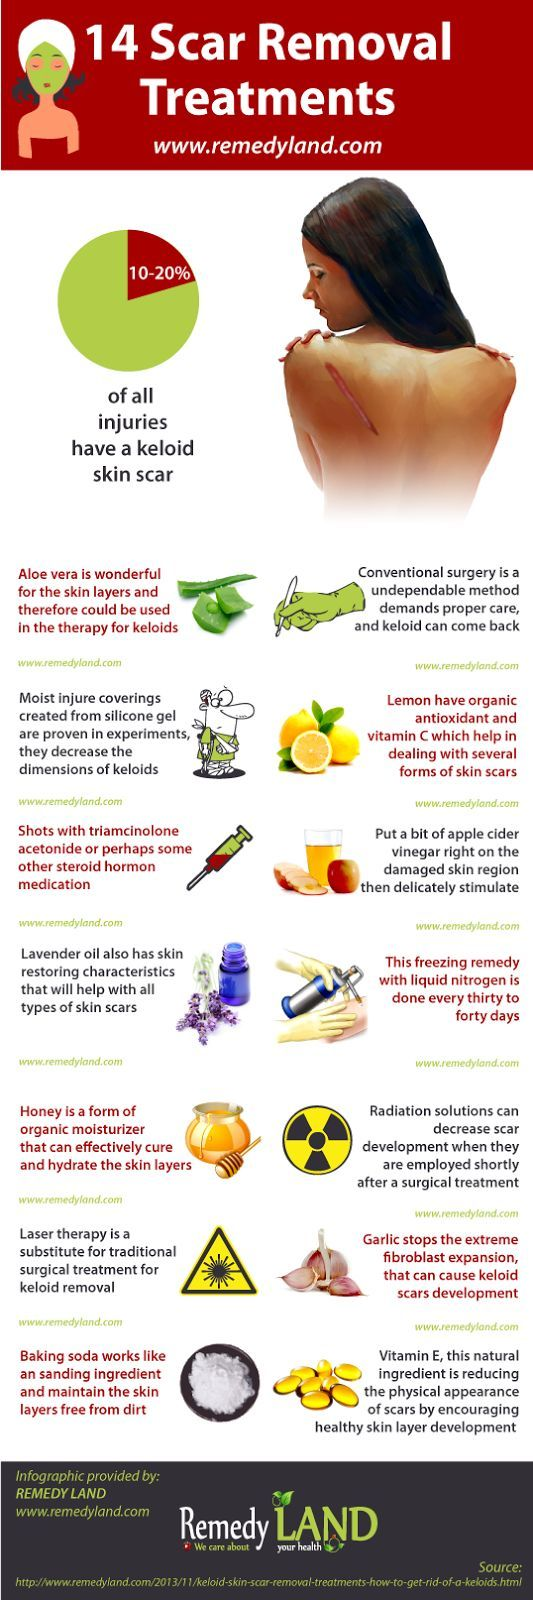 Diy essential oil blend for acne scars part 2 scar healing oil and remedies